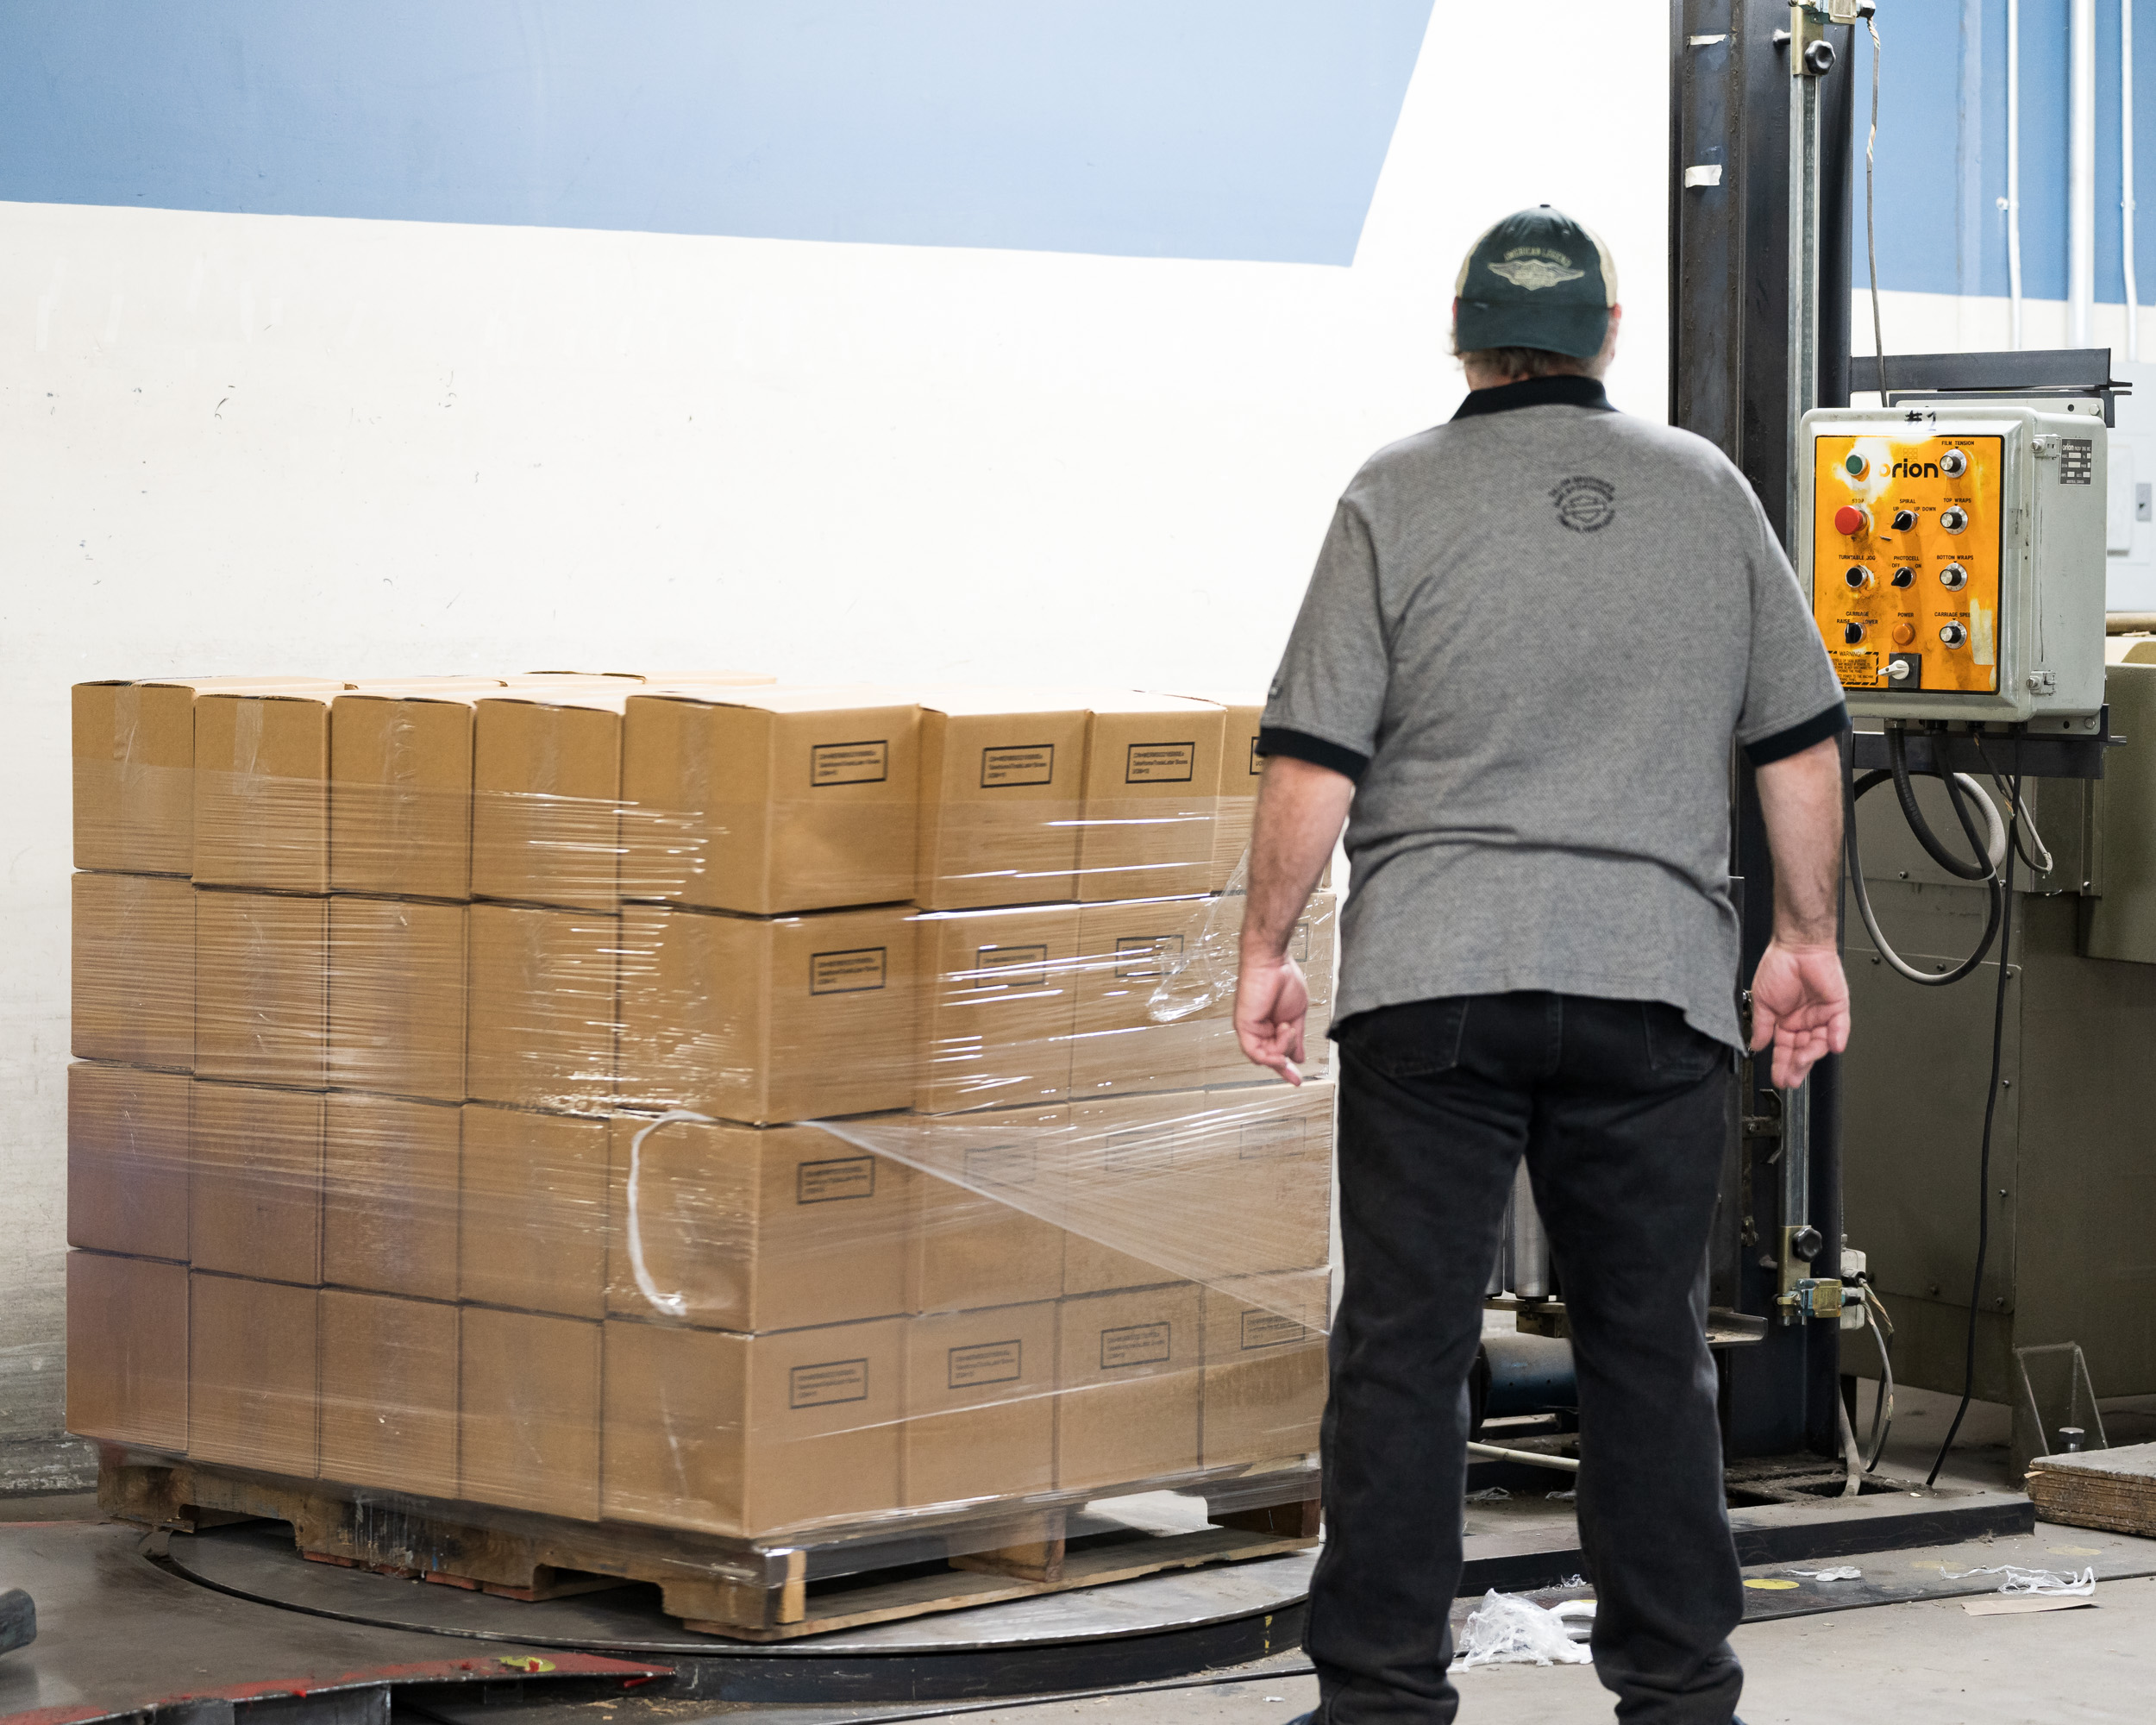 A worker shrink-wrapping a pallet of boxes